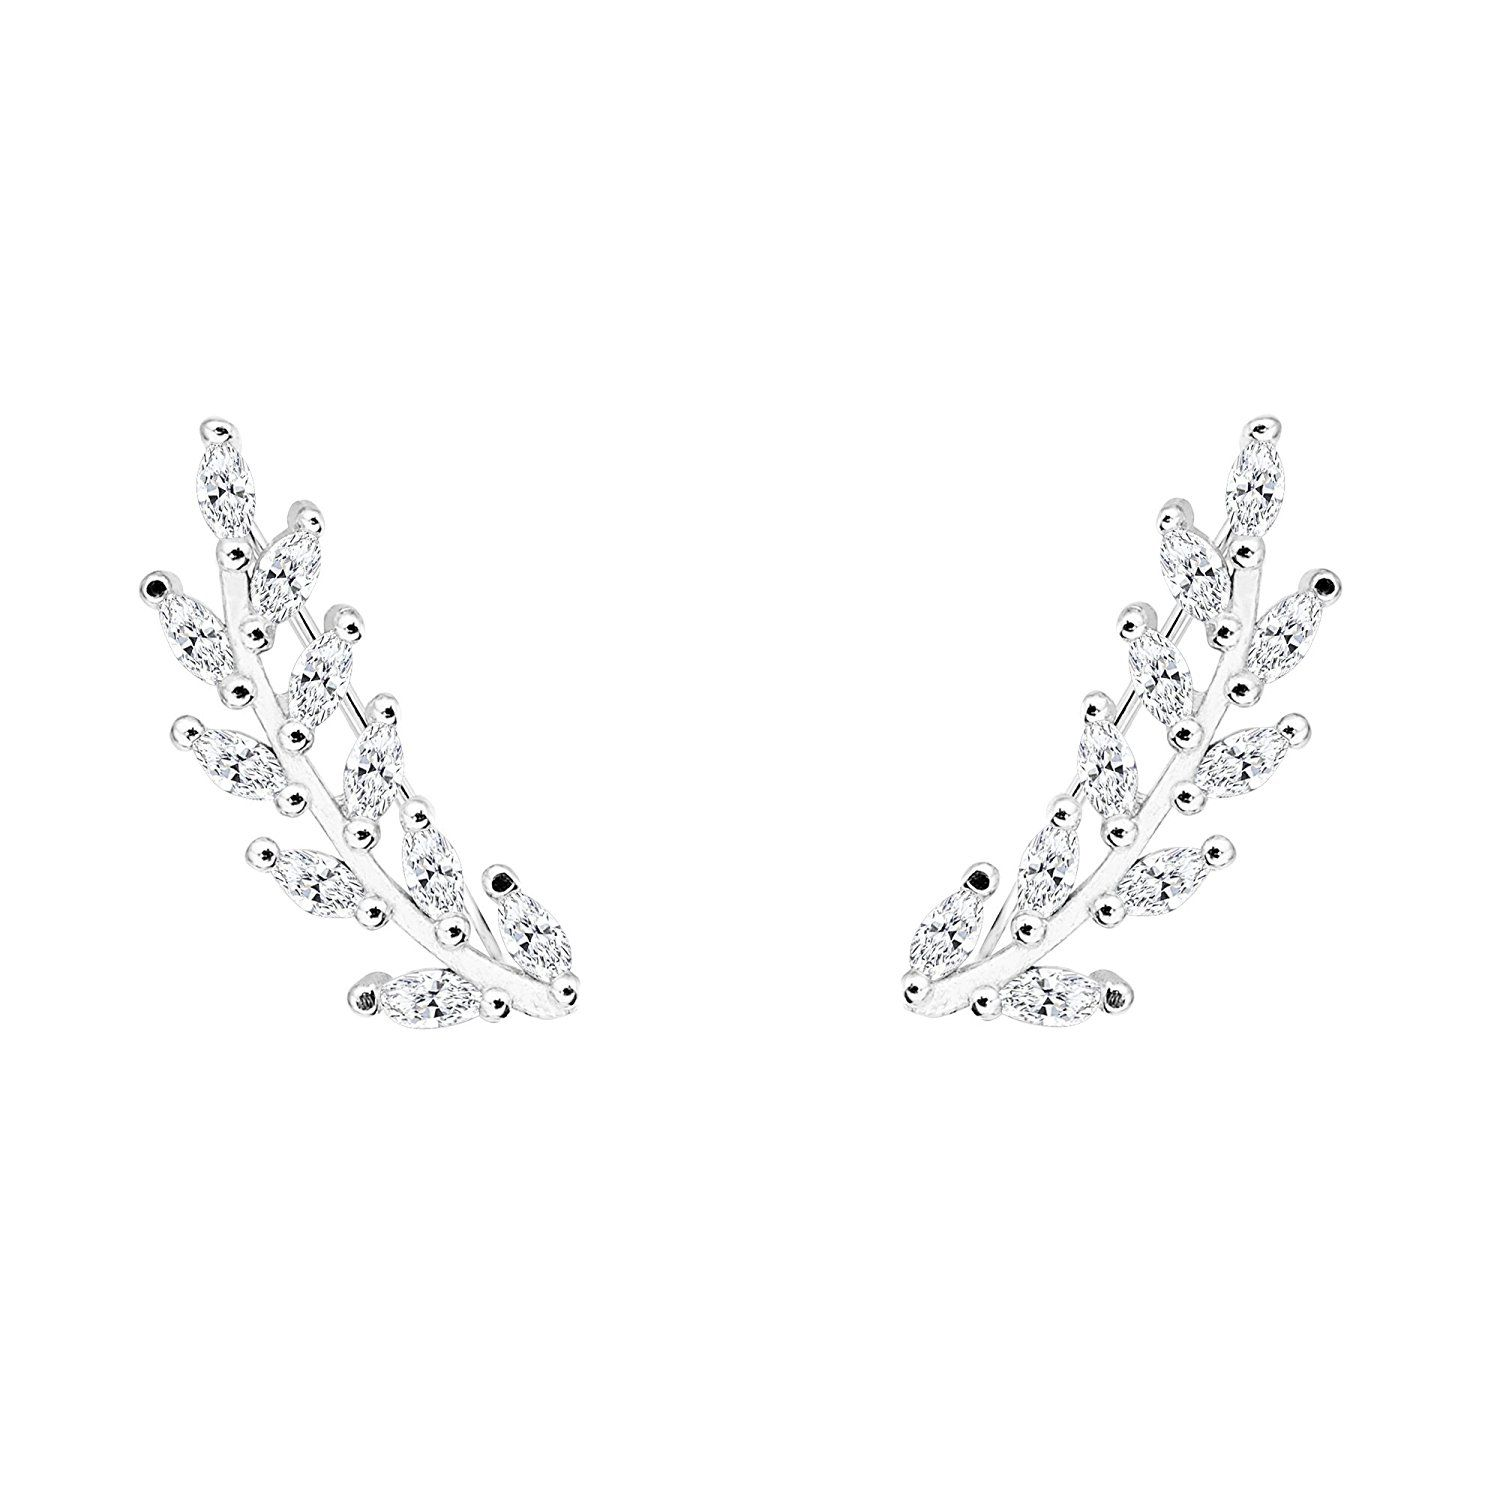 EVER FAITH® 925 Sterling Silver Cubic Zirconia Leaf Ear Cuff Wire Wrap Sweep Hoop Earrings Clear 1 Pair * You can get additional details at the image link.